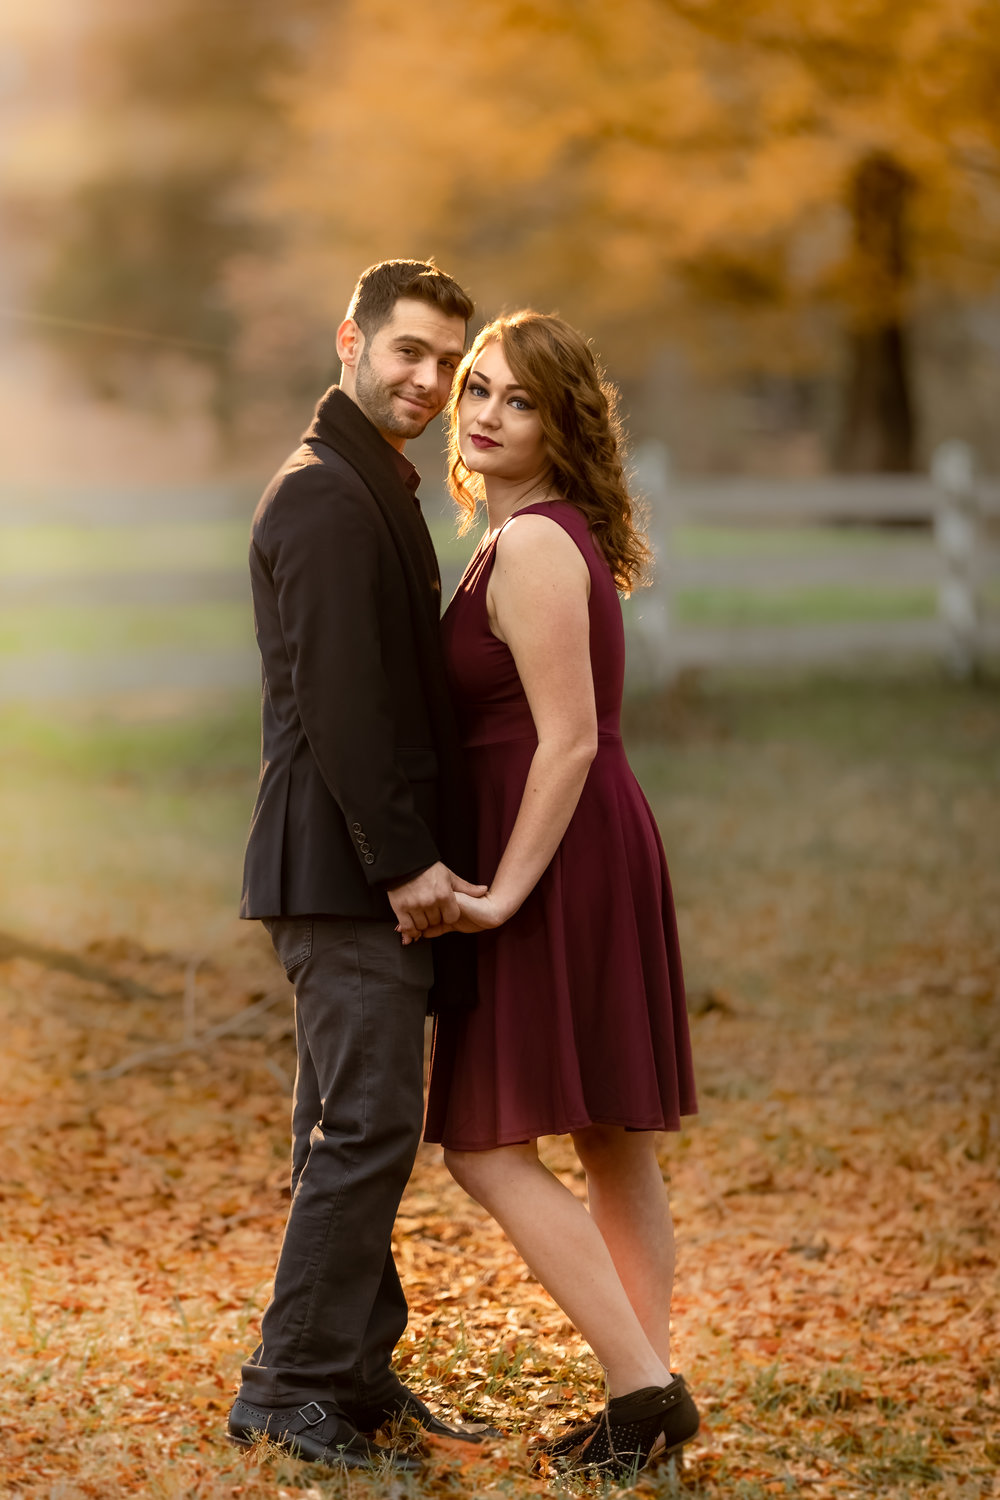 Wedding photographer Raleigh NC